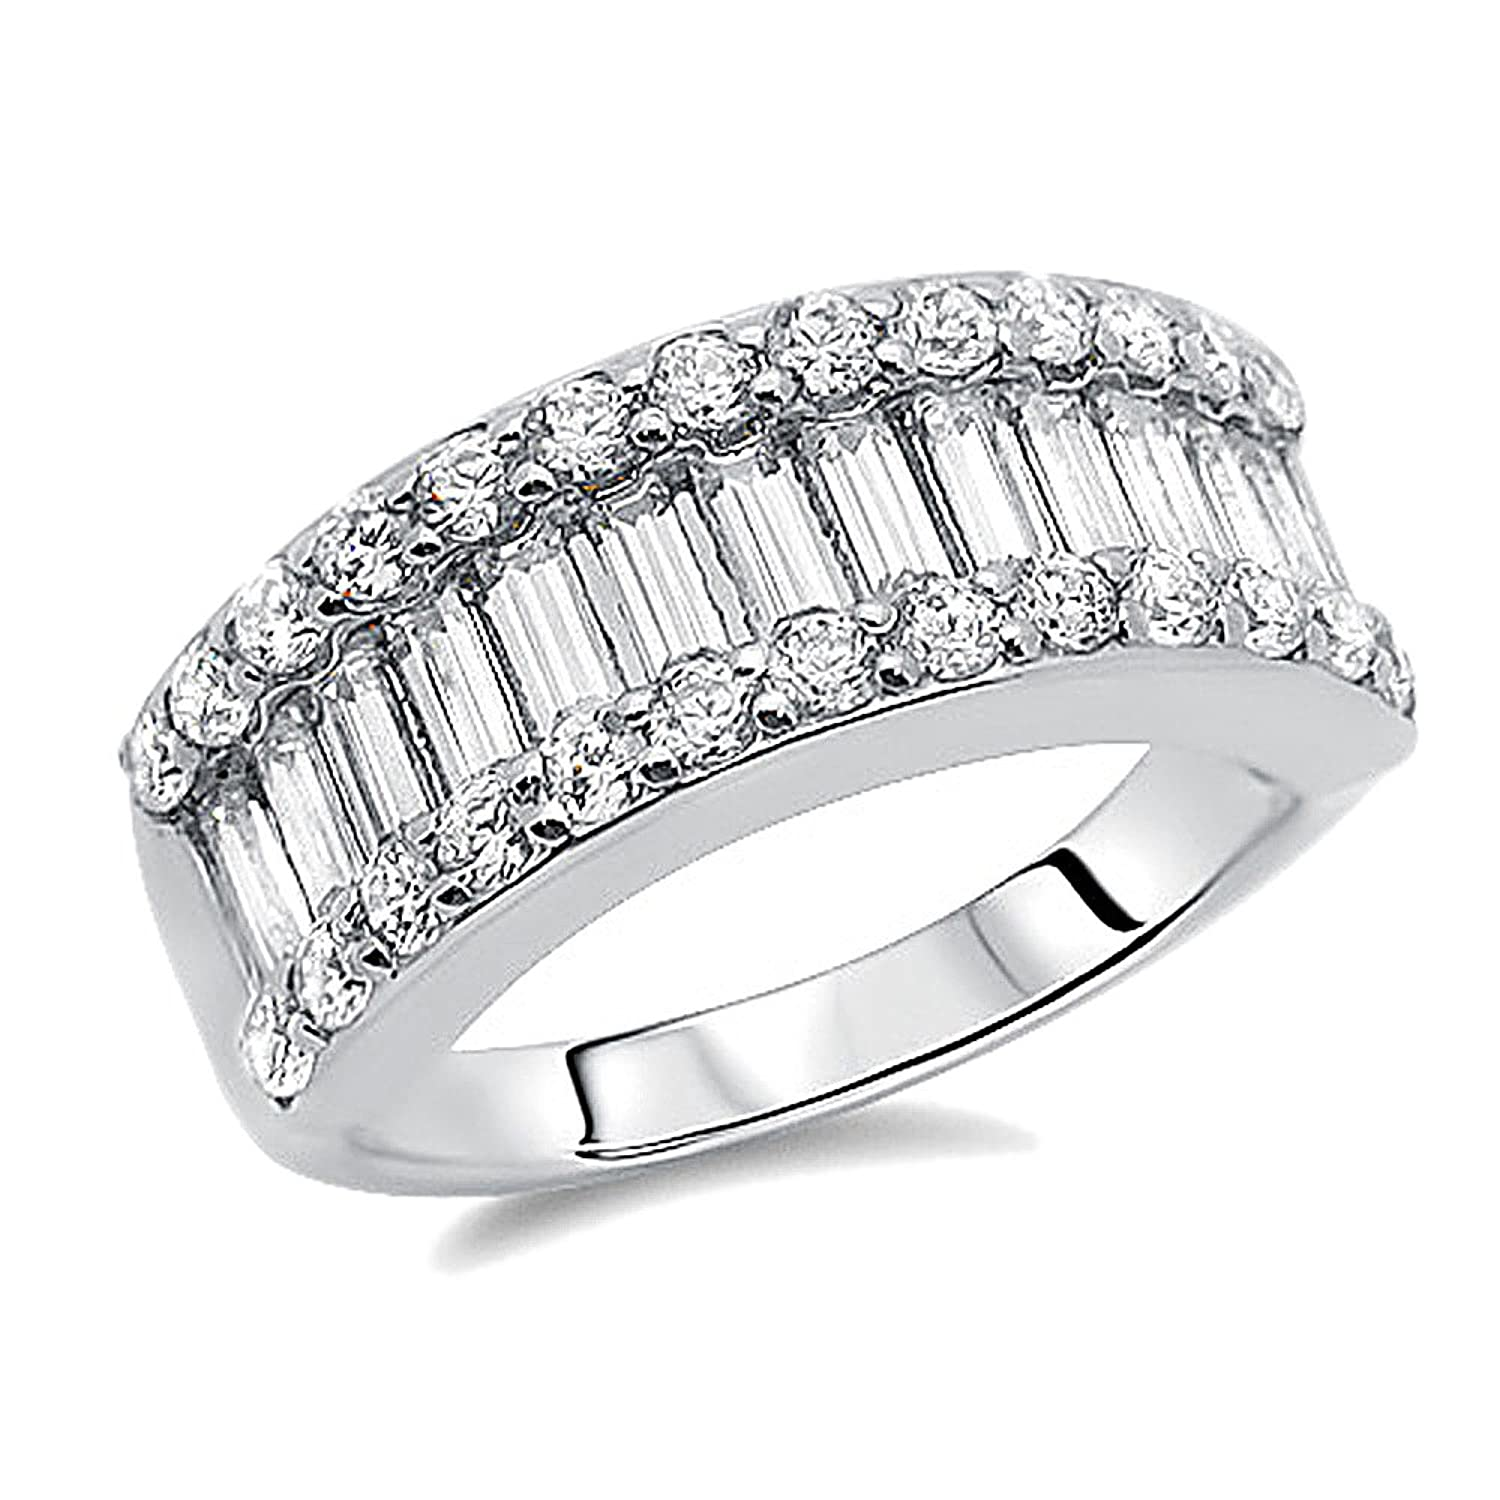 wedding egl by wholesale engagement under com dhgate ring emerald cut product k asdreasg baguette rings diamond